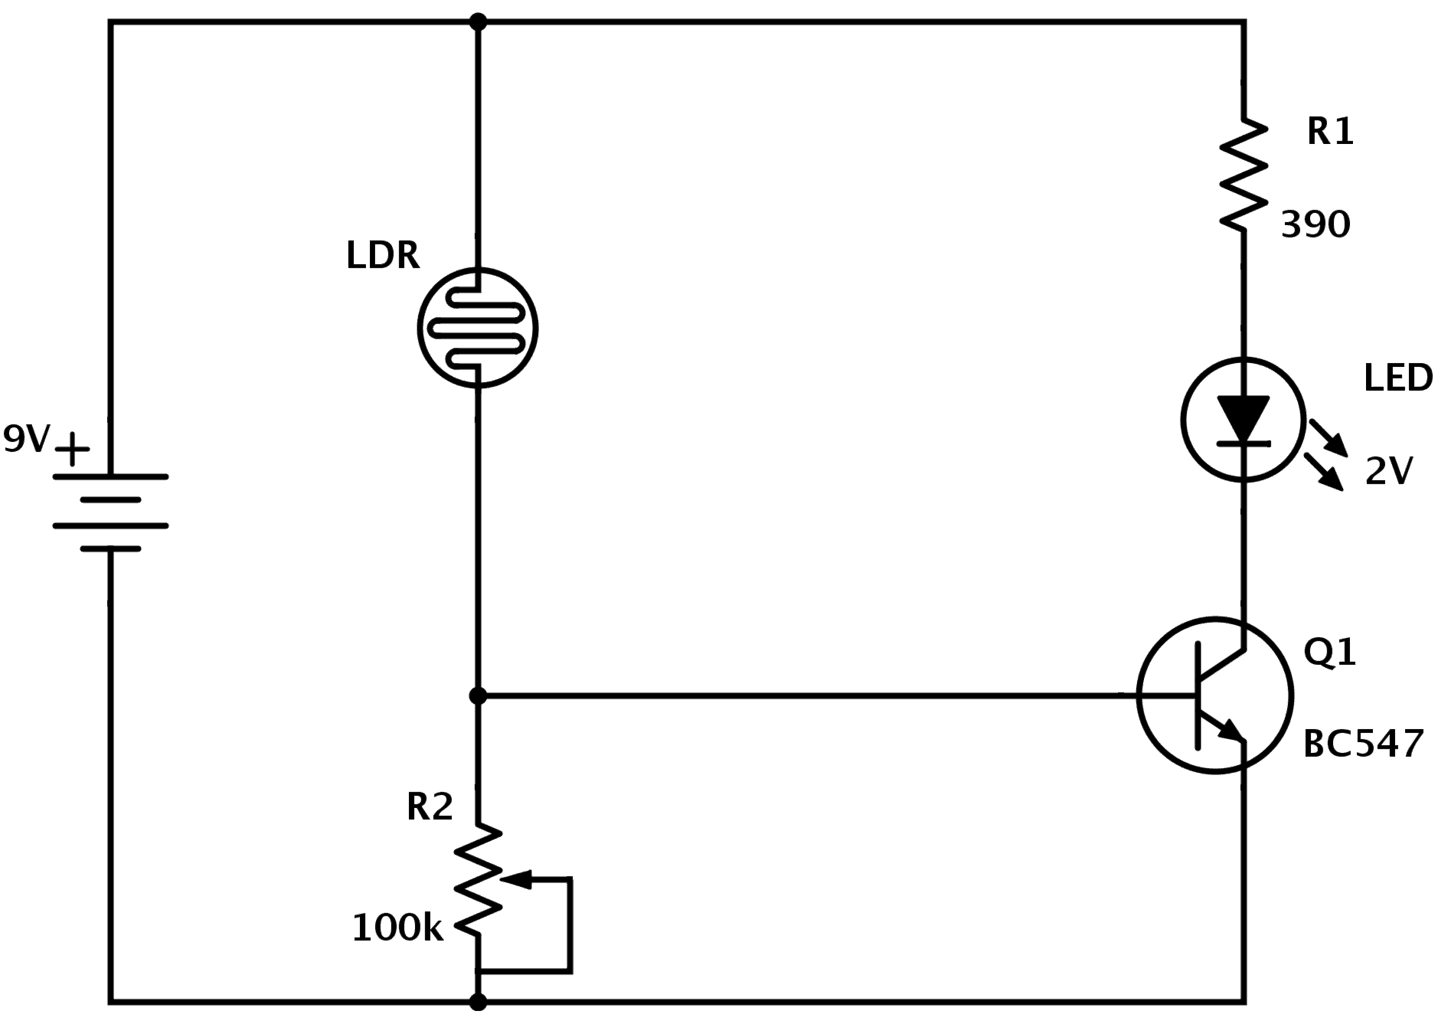 ldr circuit diagram build electronic circuits rh build electronic circuits com simple electric circuit diagram symbols simple electronic schematic diagrams